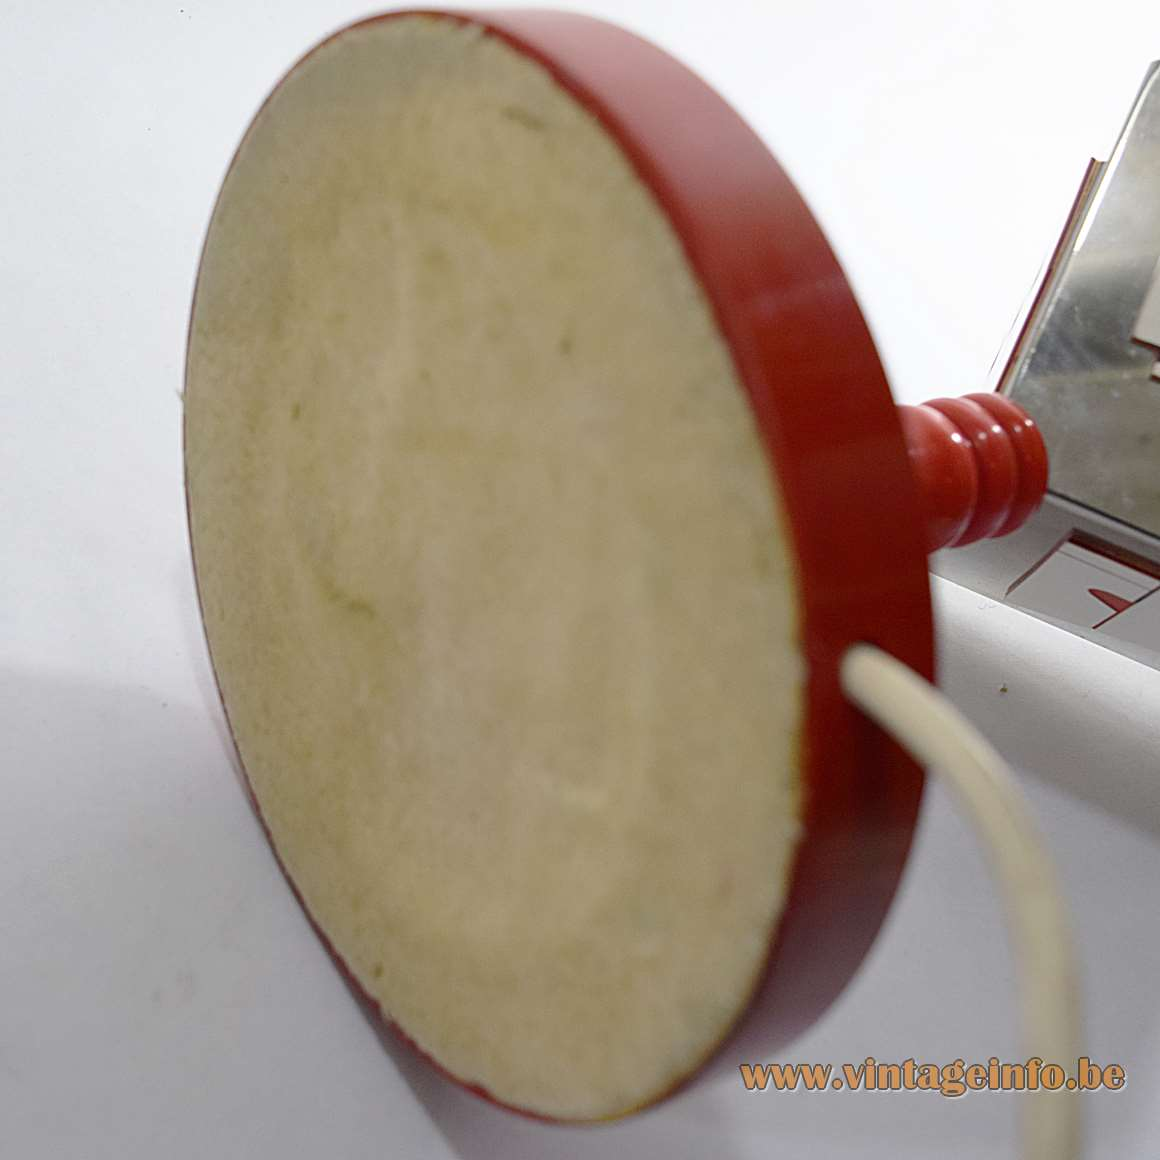 Diamond Cutting Early Retirement Table Lamp - bottom of the base